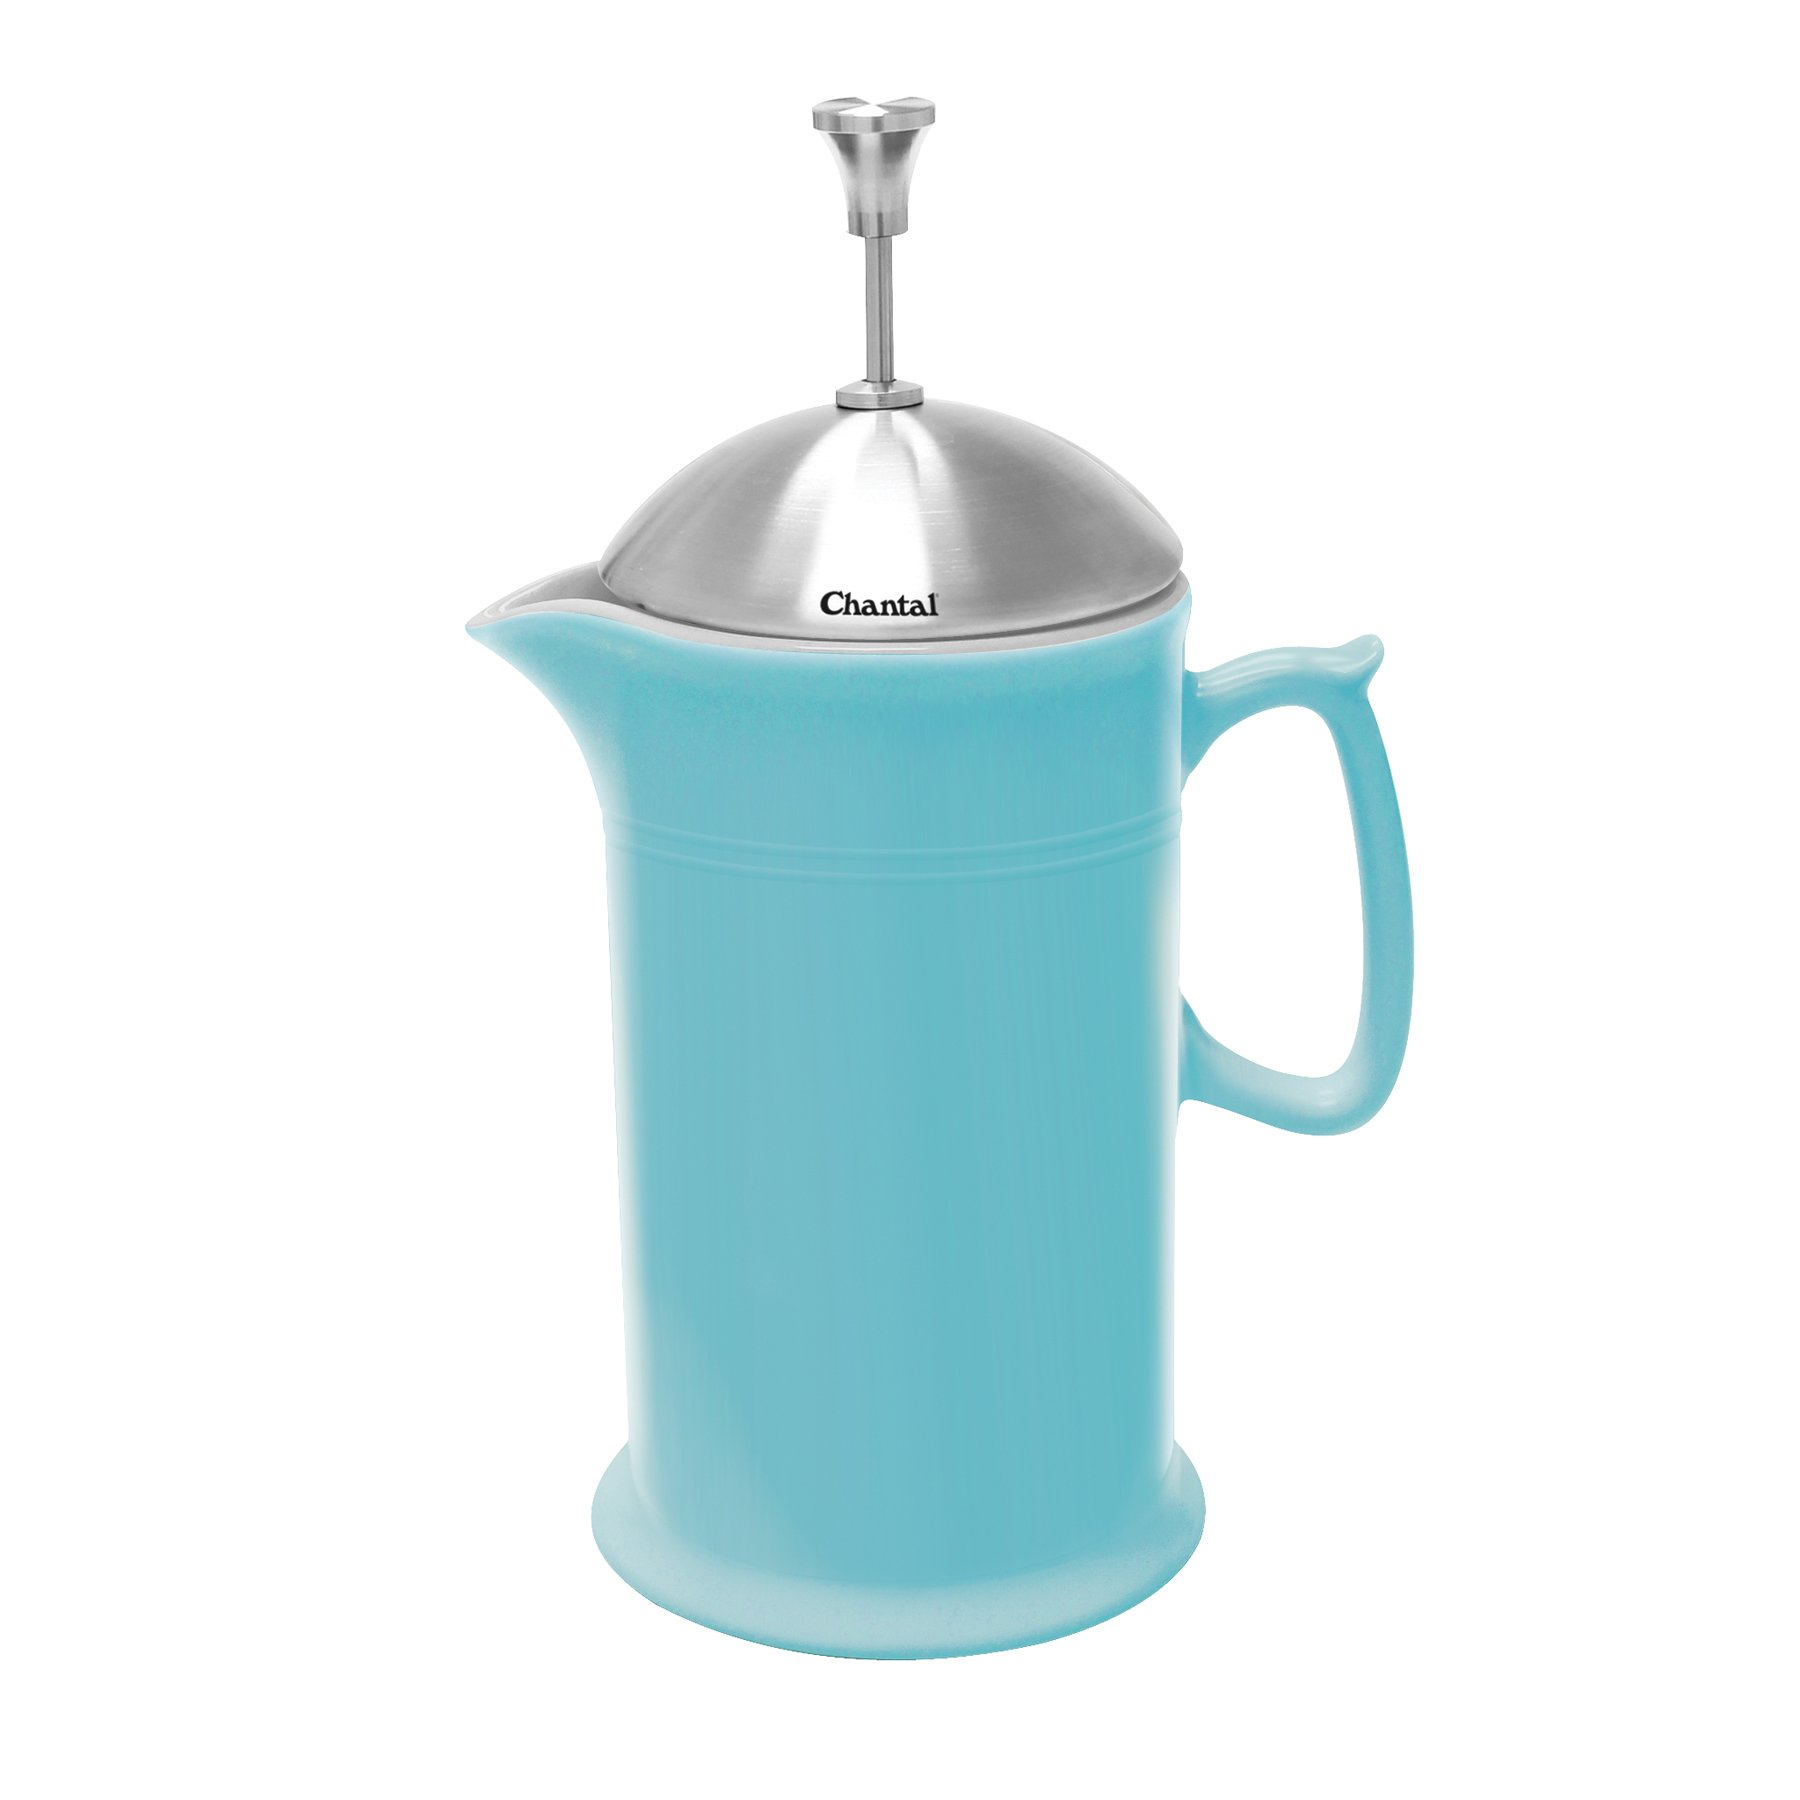 Chantal 92-FP28 SQ Ceramic French Press with Stainless Steel Plunger/Lid, Aqua